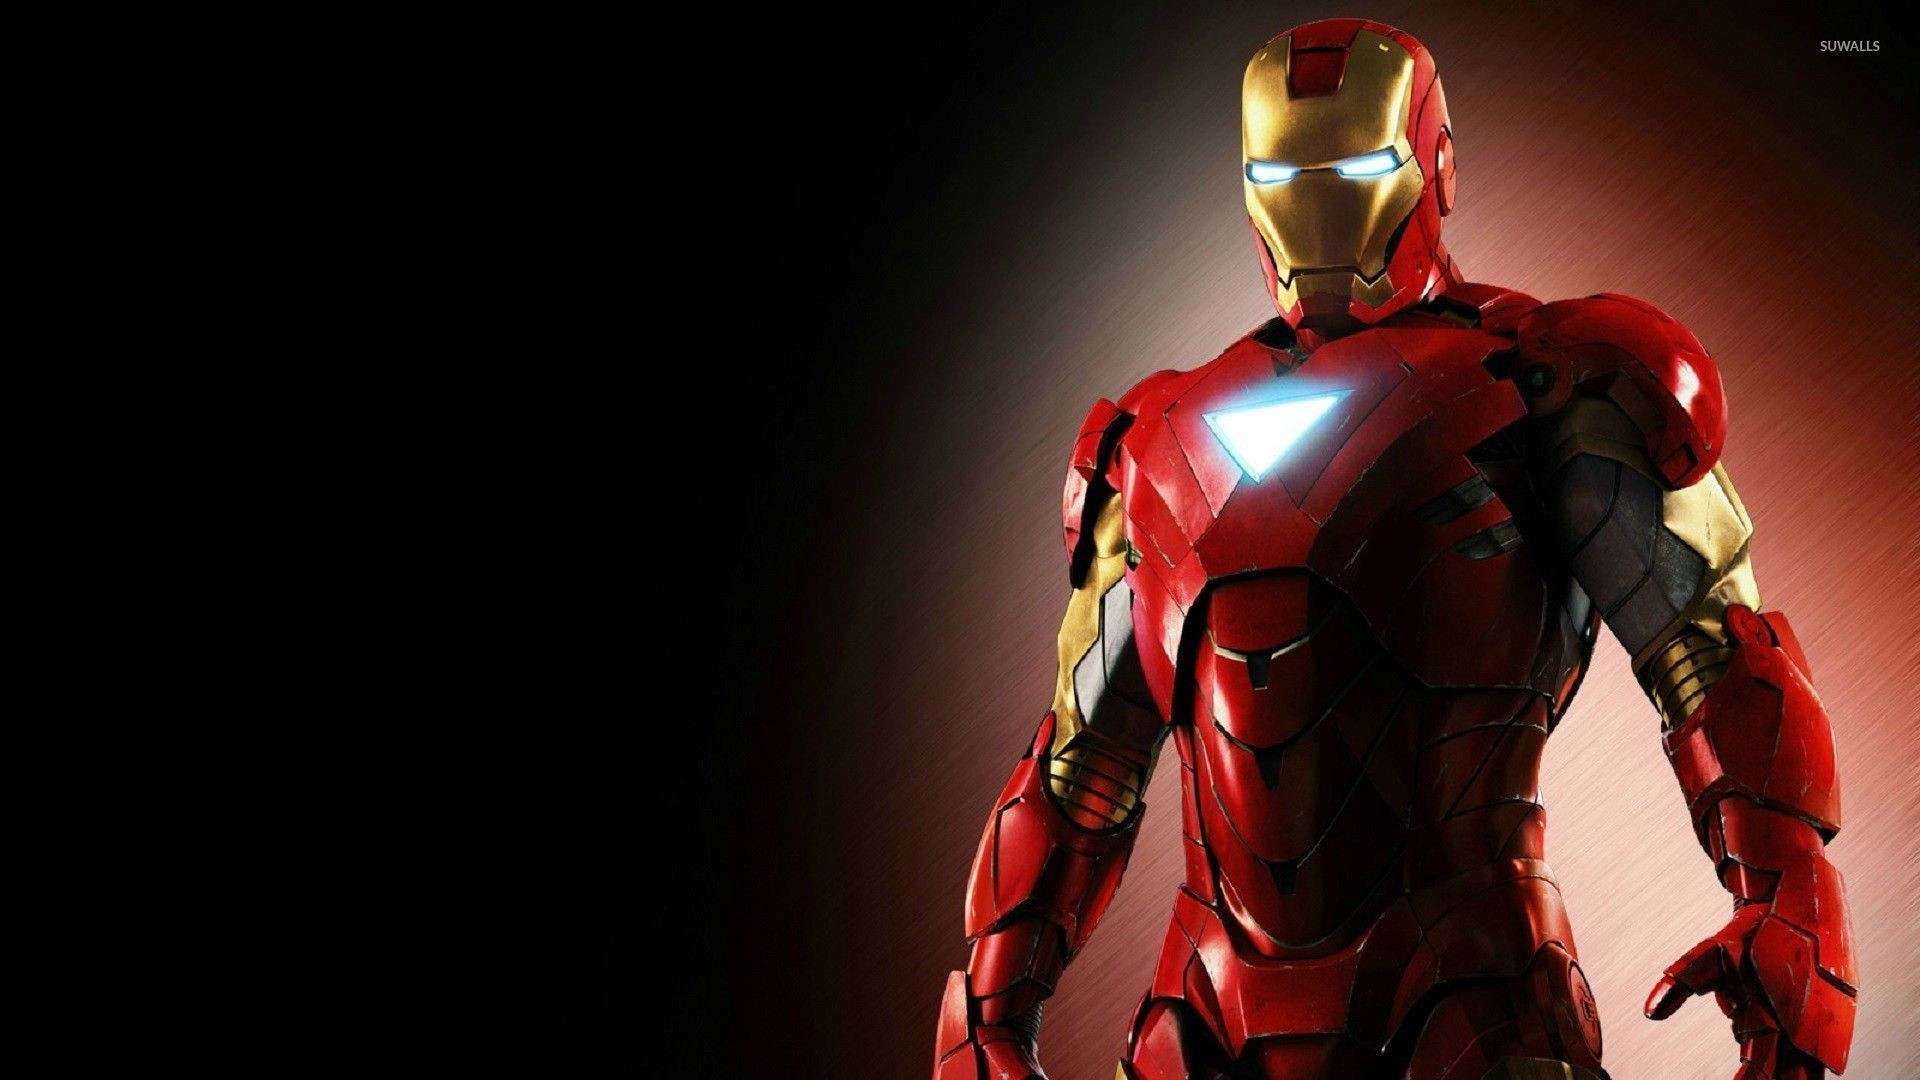 iron man suit wallpapers 75 images